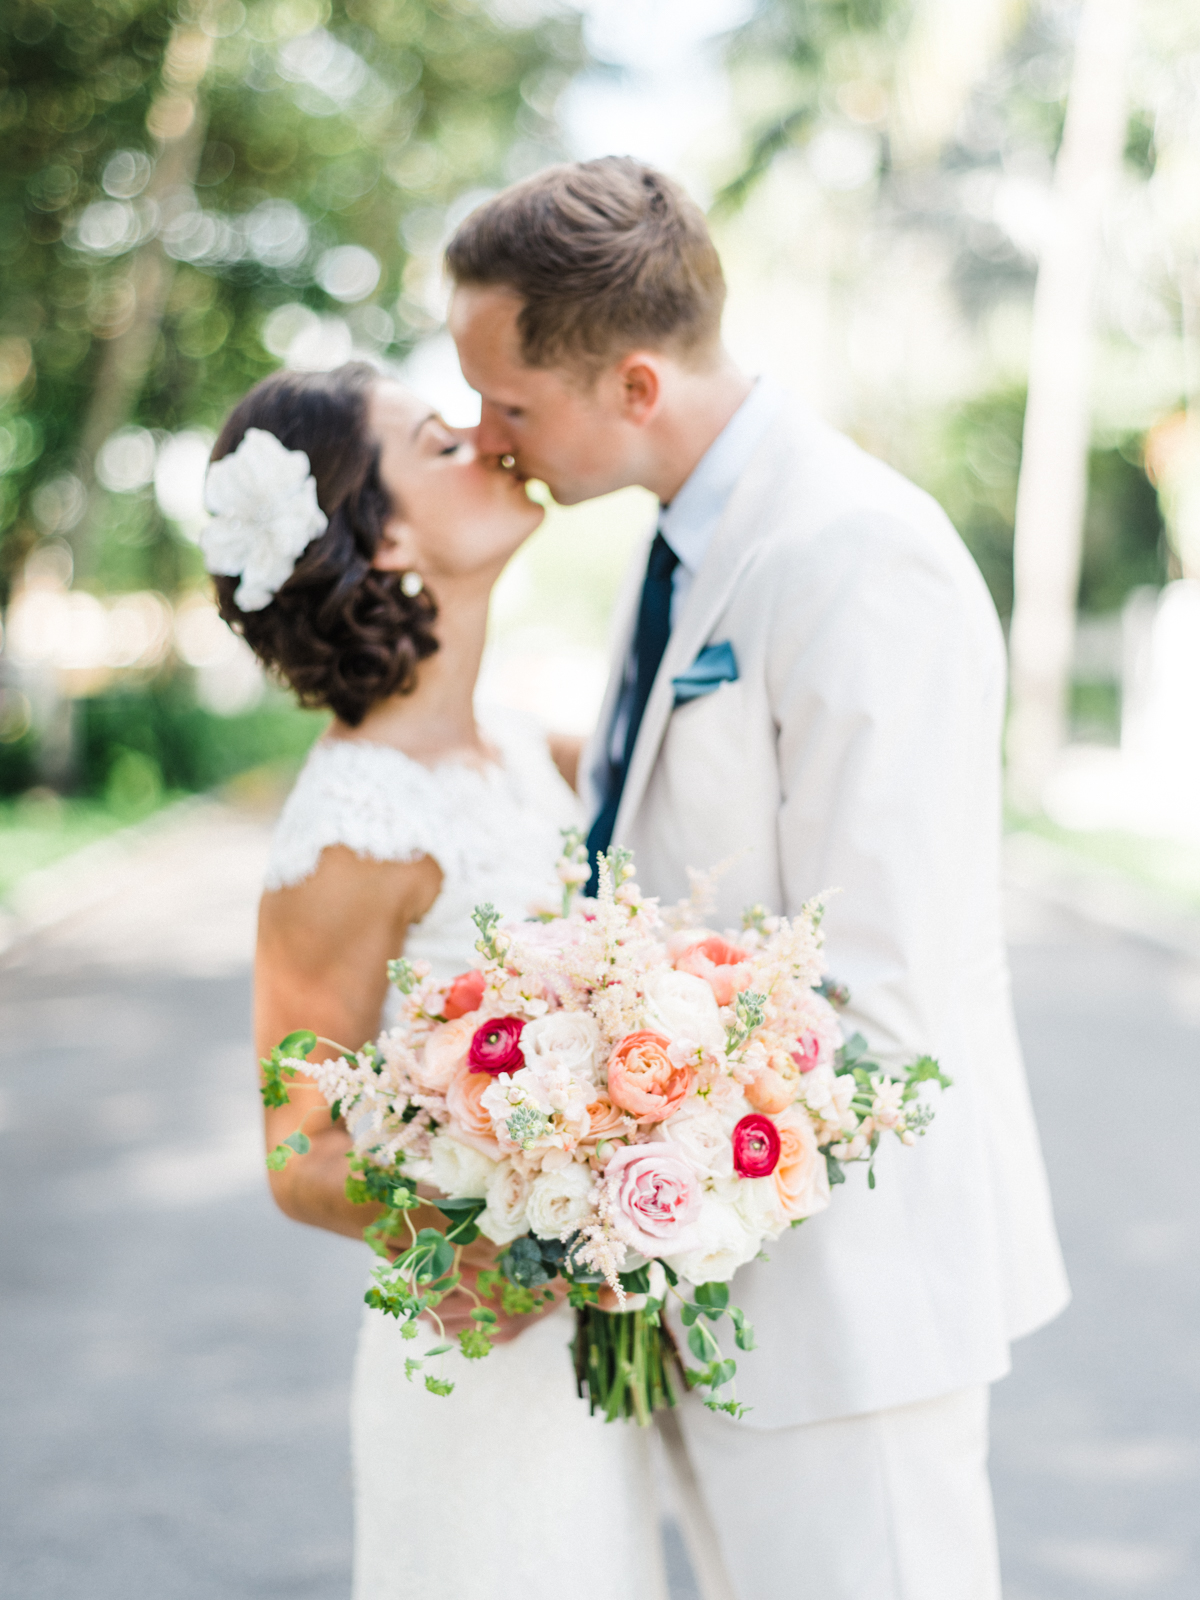 From England to Key West destination wedding at the Hemingway House and Museum